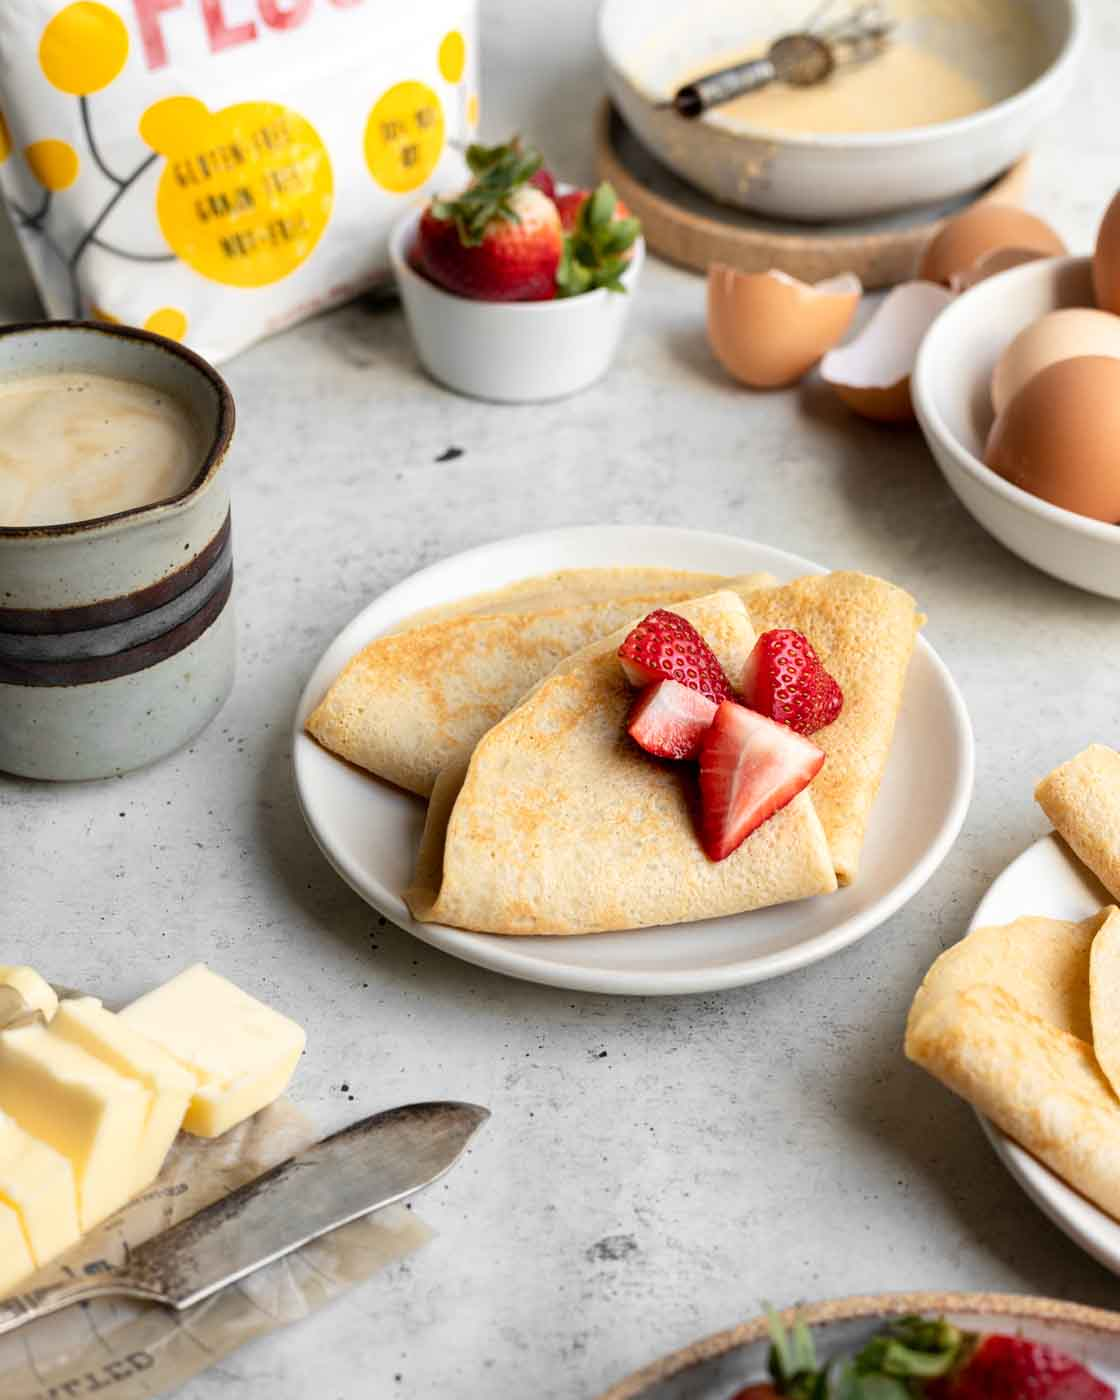 Easy Gluten-Free French Crepes Recipe